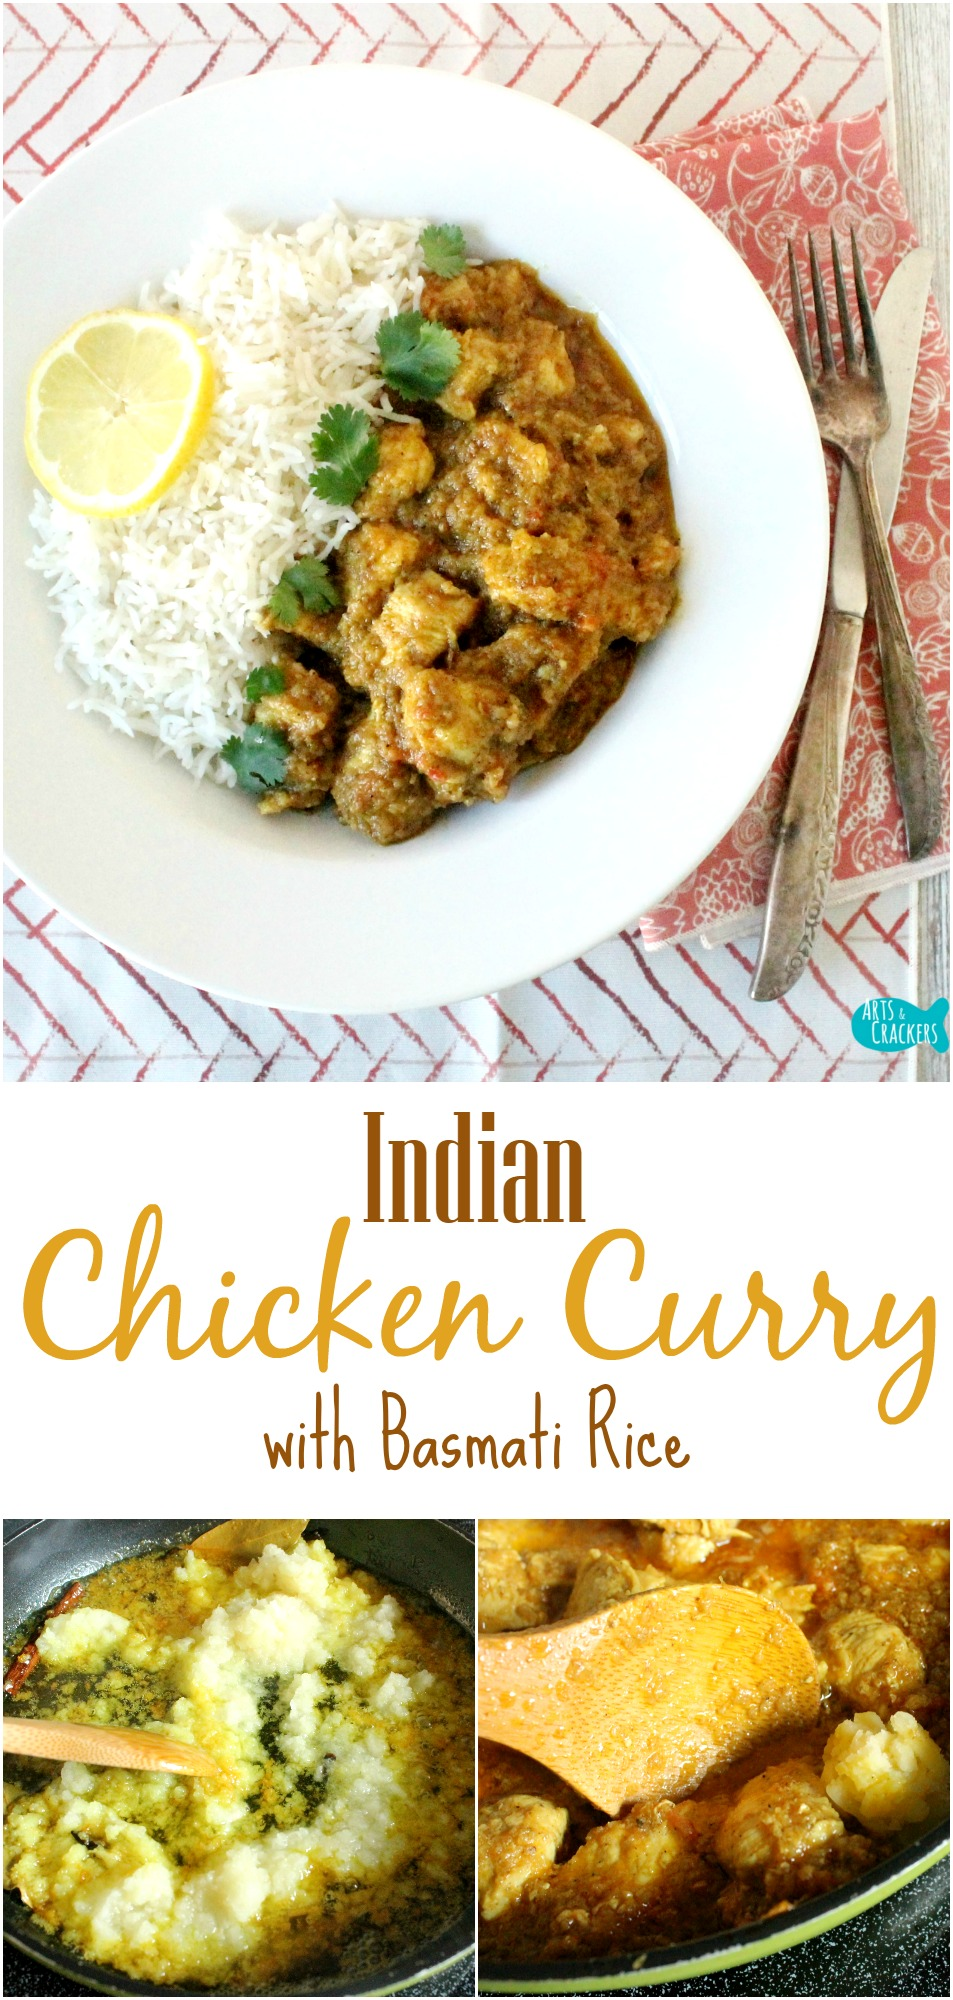 Lactose free indian chicken curry recipe with basmati rice this indian chicken curry is savory and delicious it is also lactose free and has forumfinder Gallery